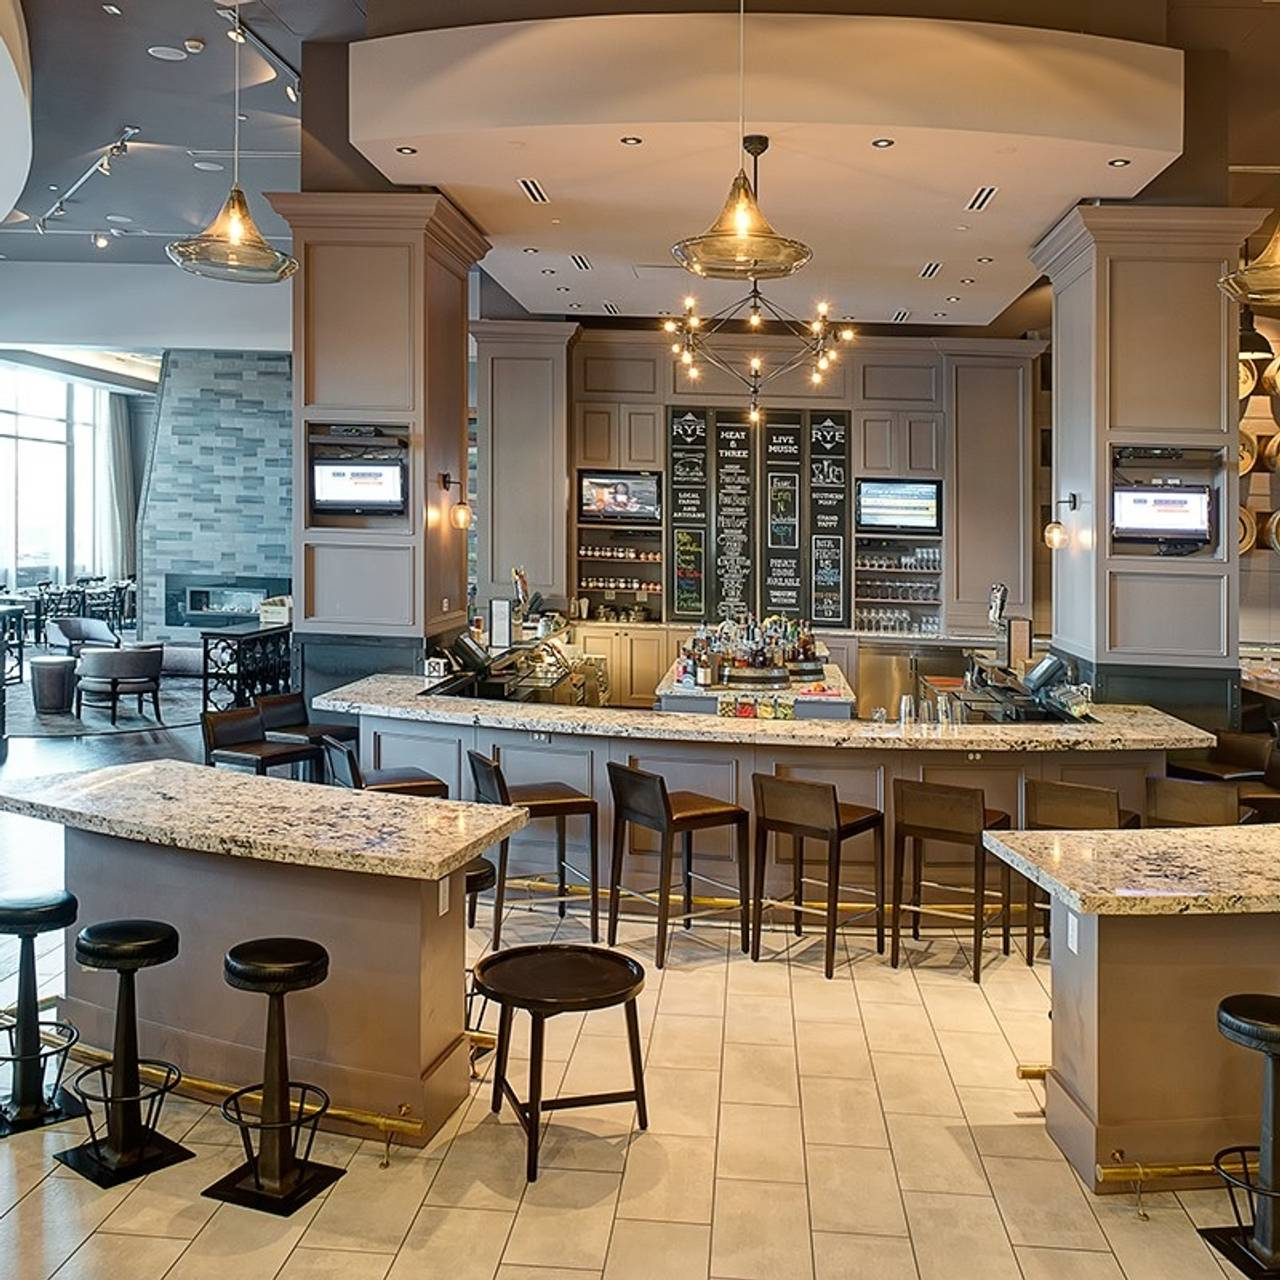 Rye Bar and Southern Kitchen Restaurant - Raleigh, NC | OpenTable